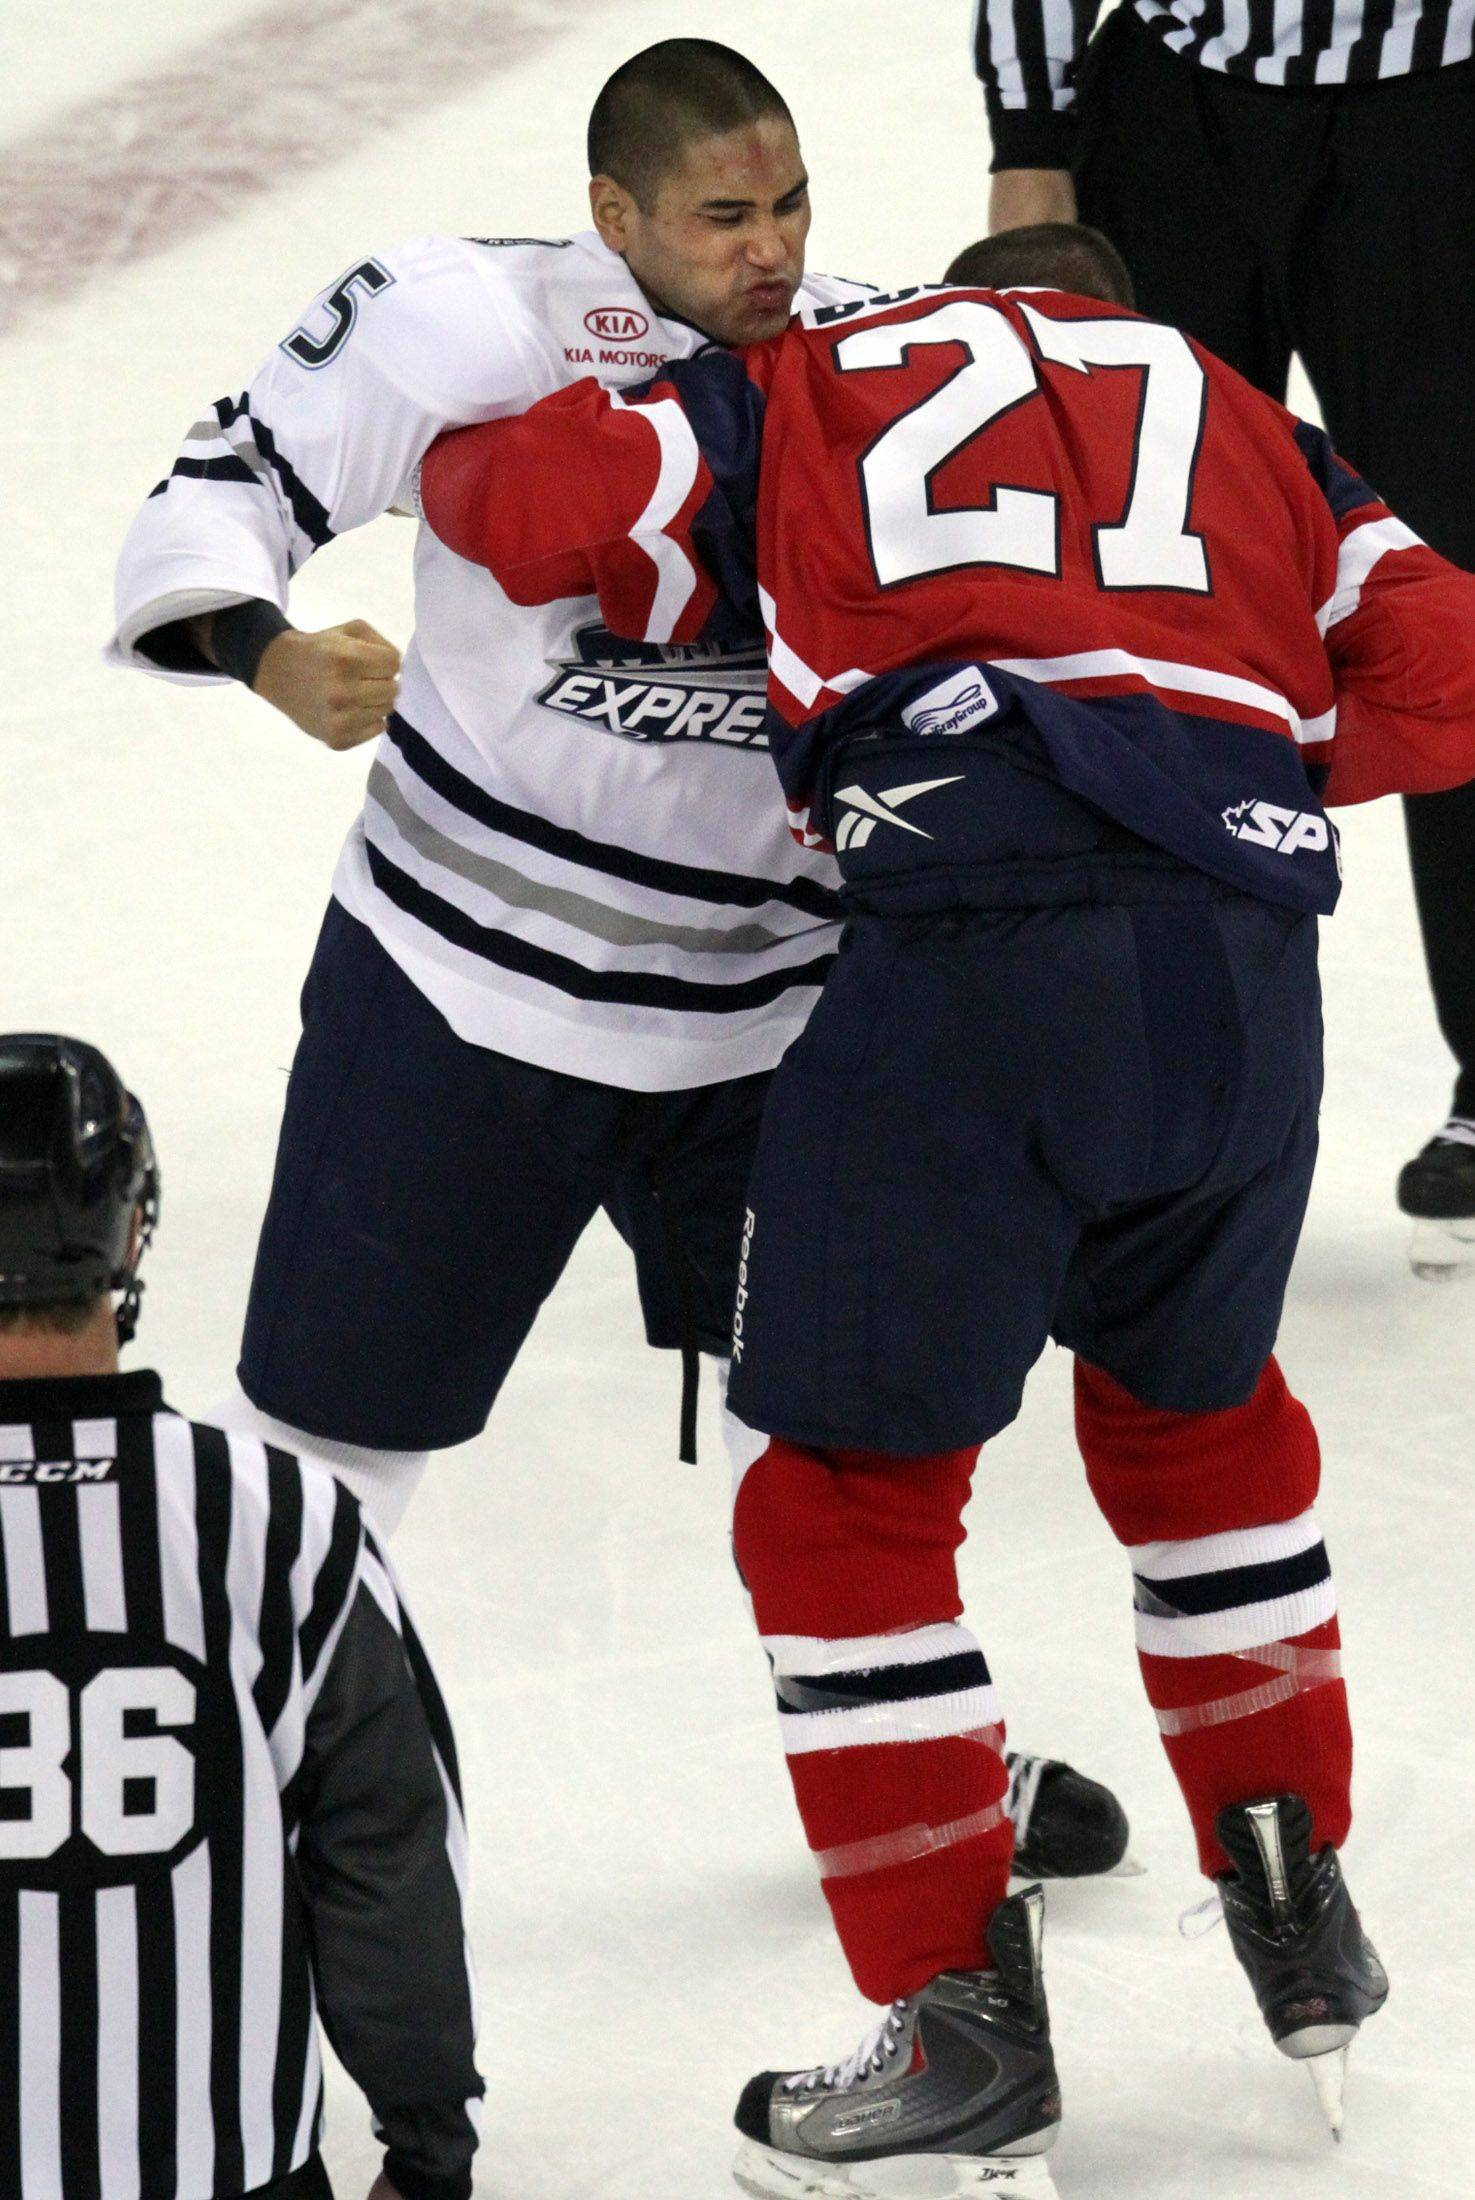 Chicago Express forward Bobby Robins, left, landed several punches in a lengthy fight with Kalamazoo Wings right wing Darryl Bootland in the first period at the Sears Centre in Hoffman Estates on Saturday, October 22nd.